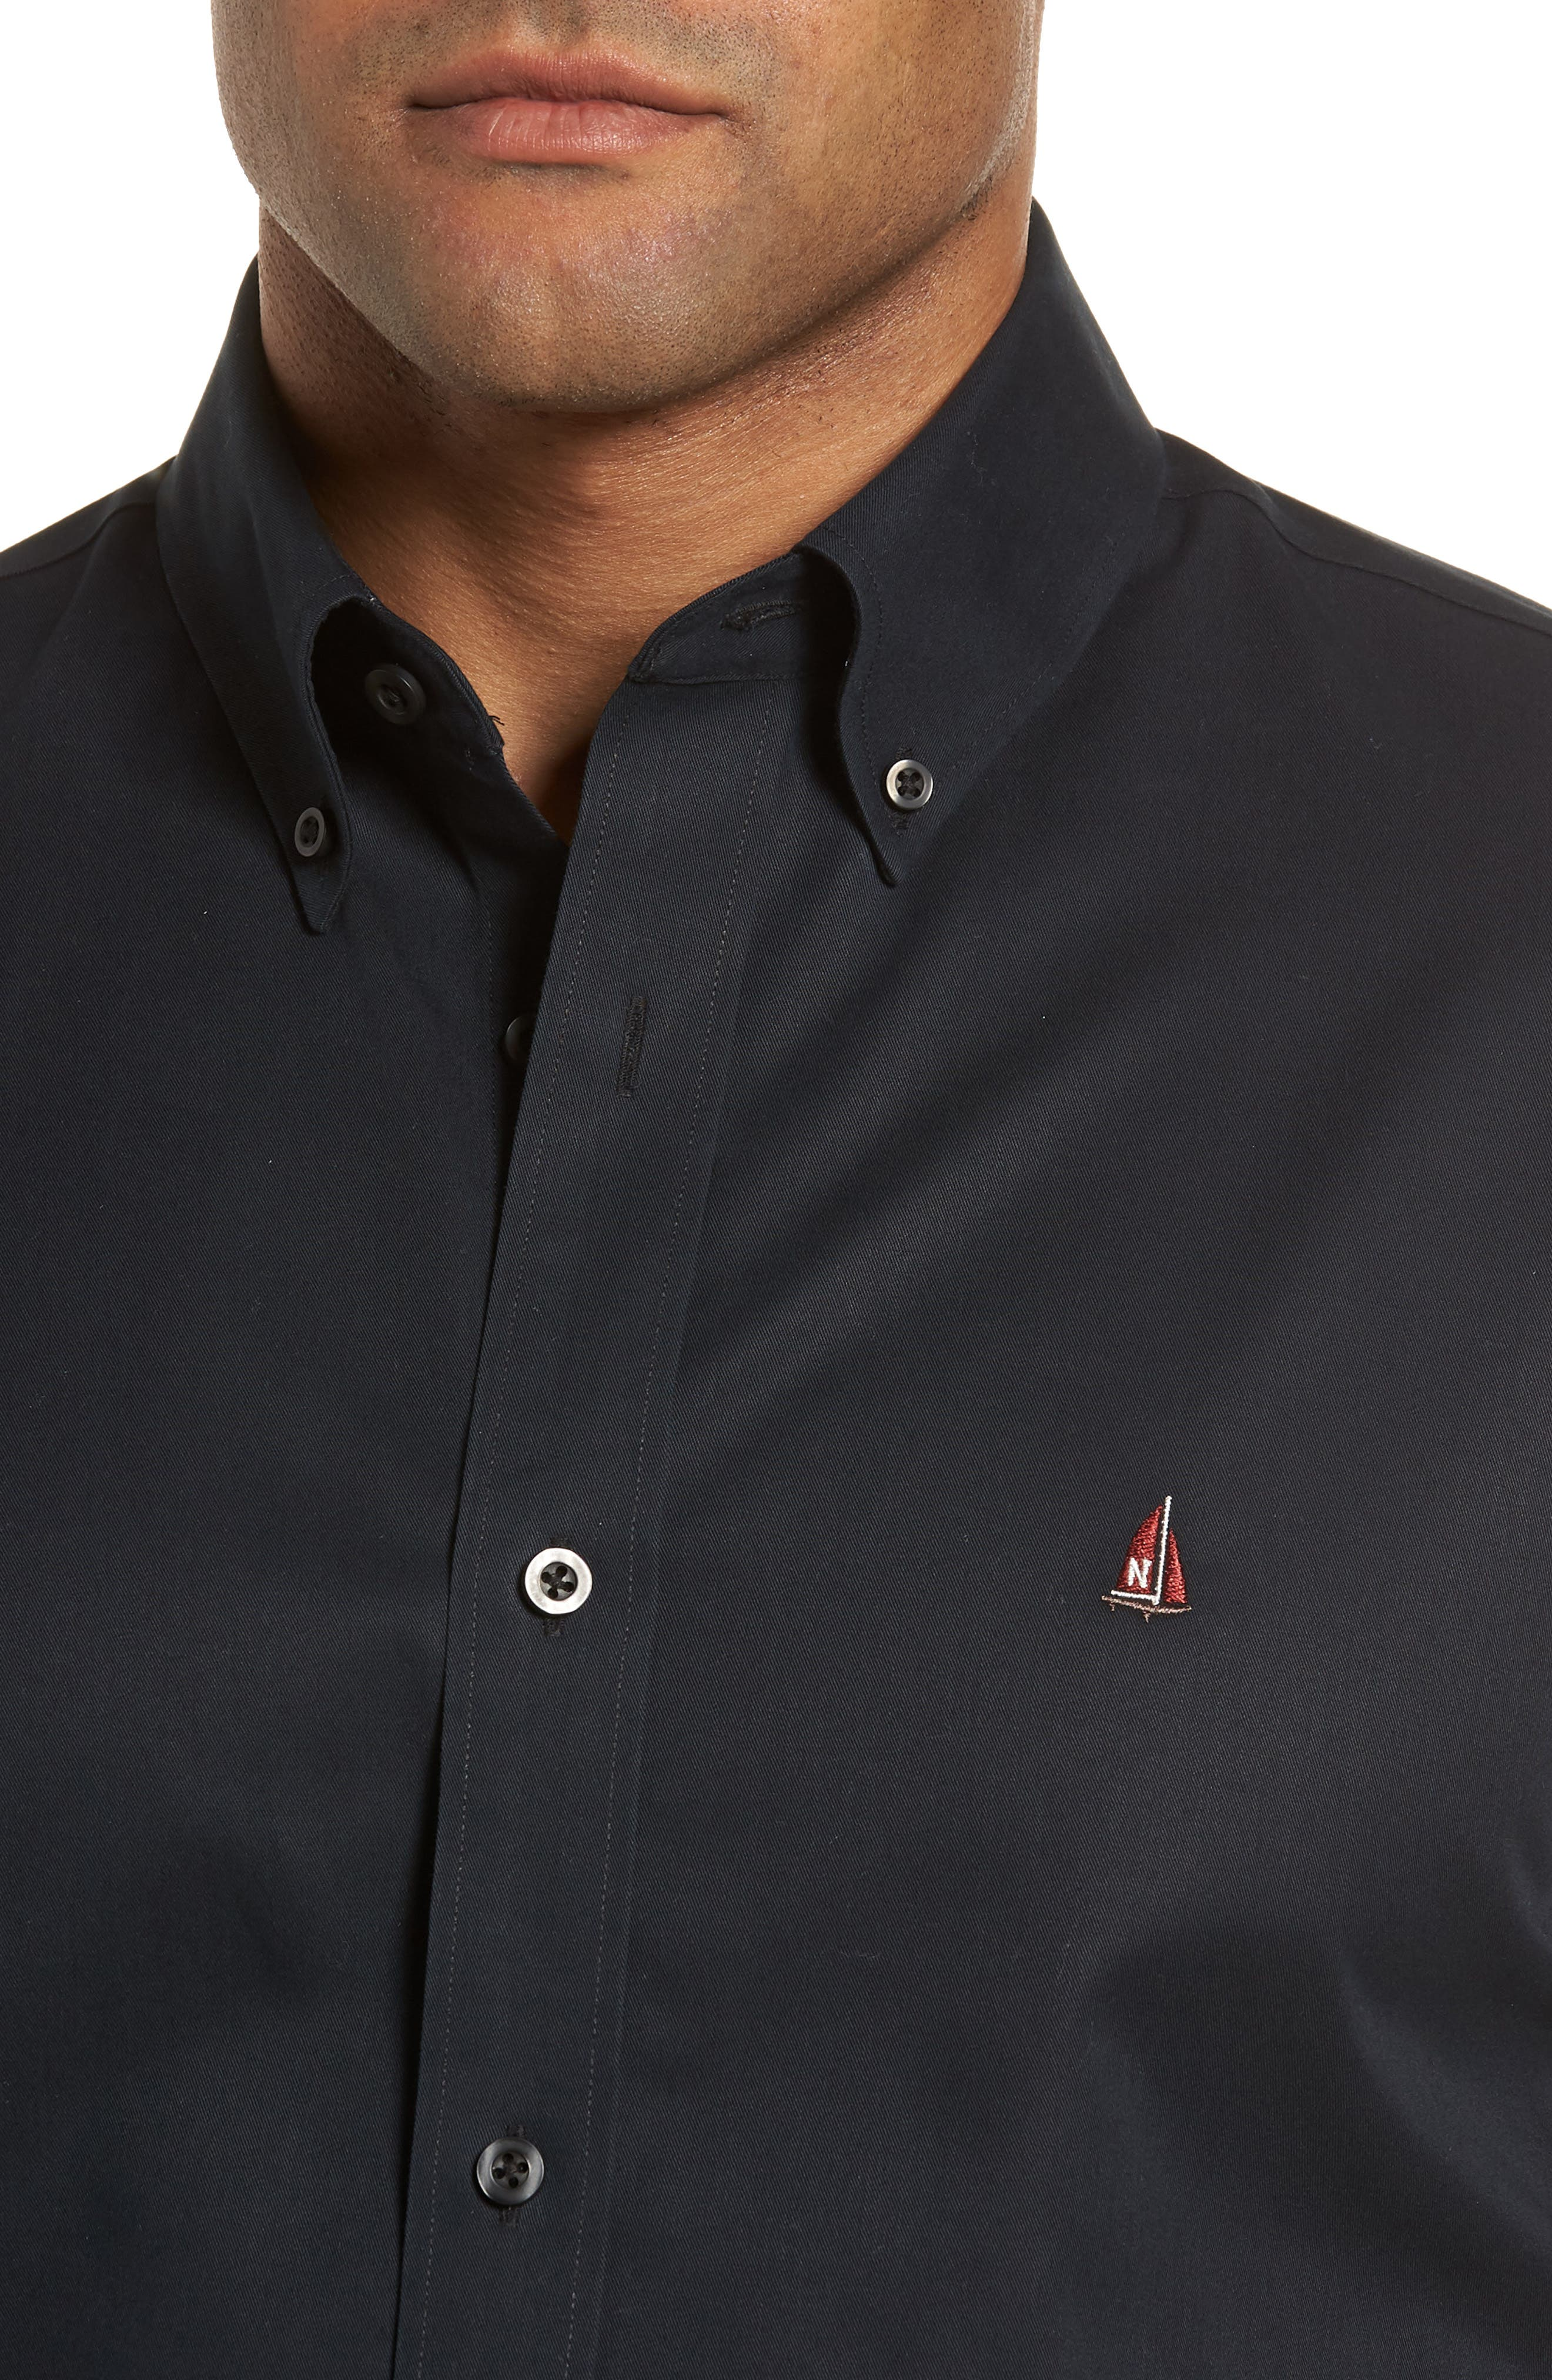 NORDSTROM MEN'S SHOP, Smartcare<sup>™</sup> Traditional Fit Twill Boat Shirt, Alternate thumbnail 4, color, BLACK